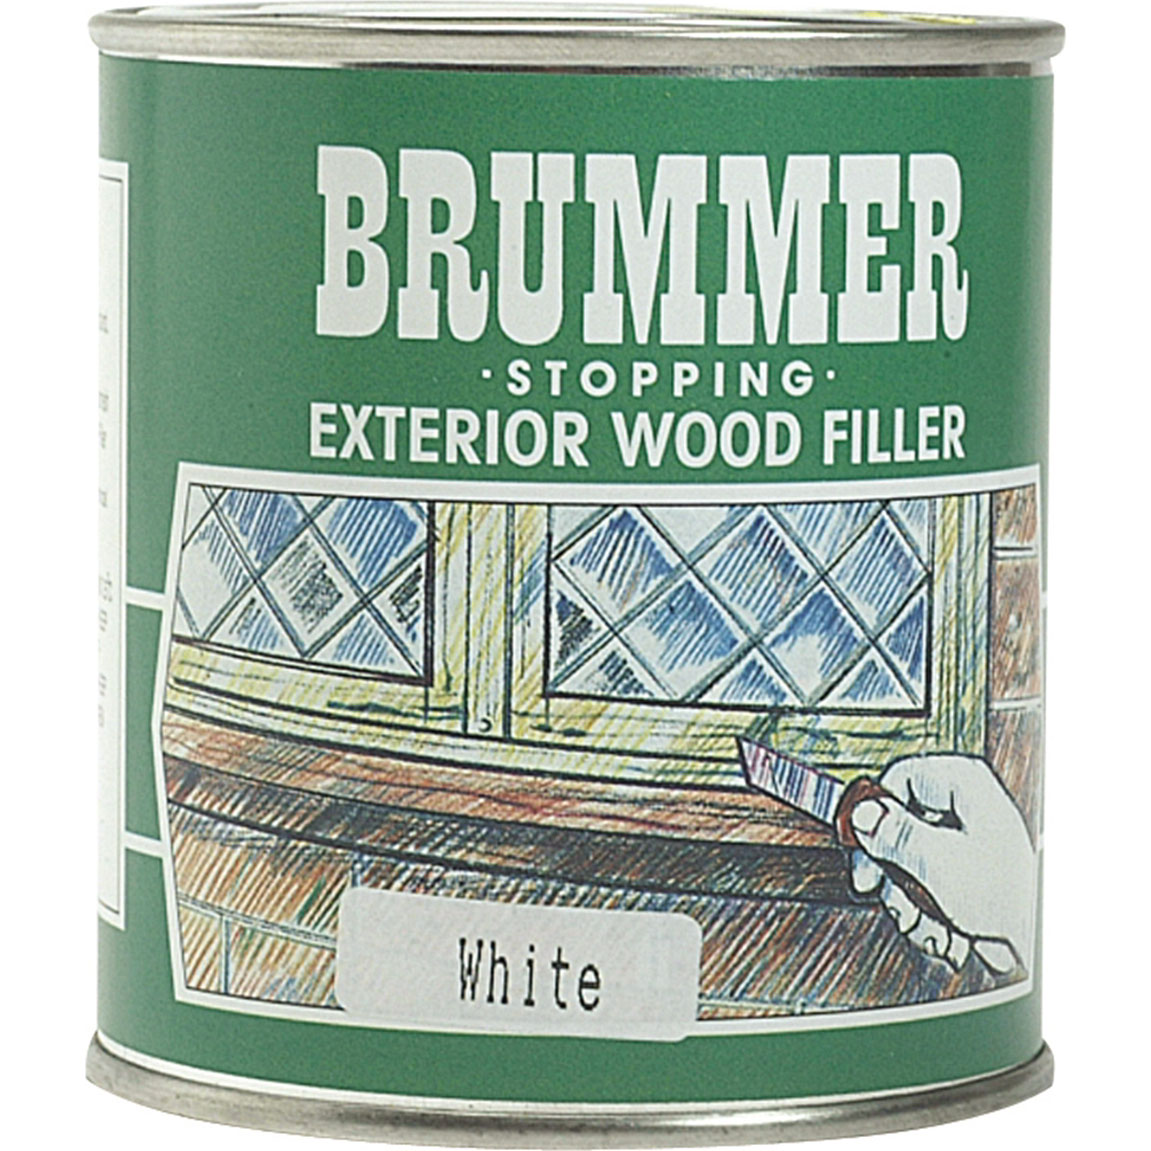 Brummer Medium Green Label Standard